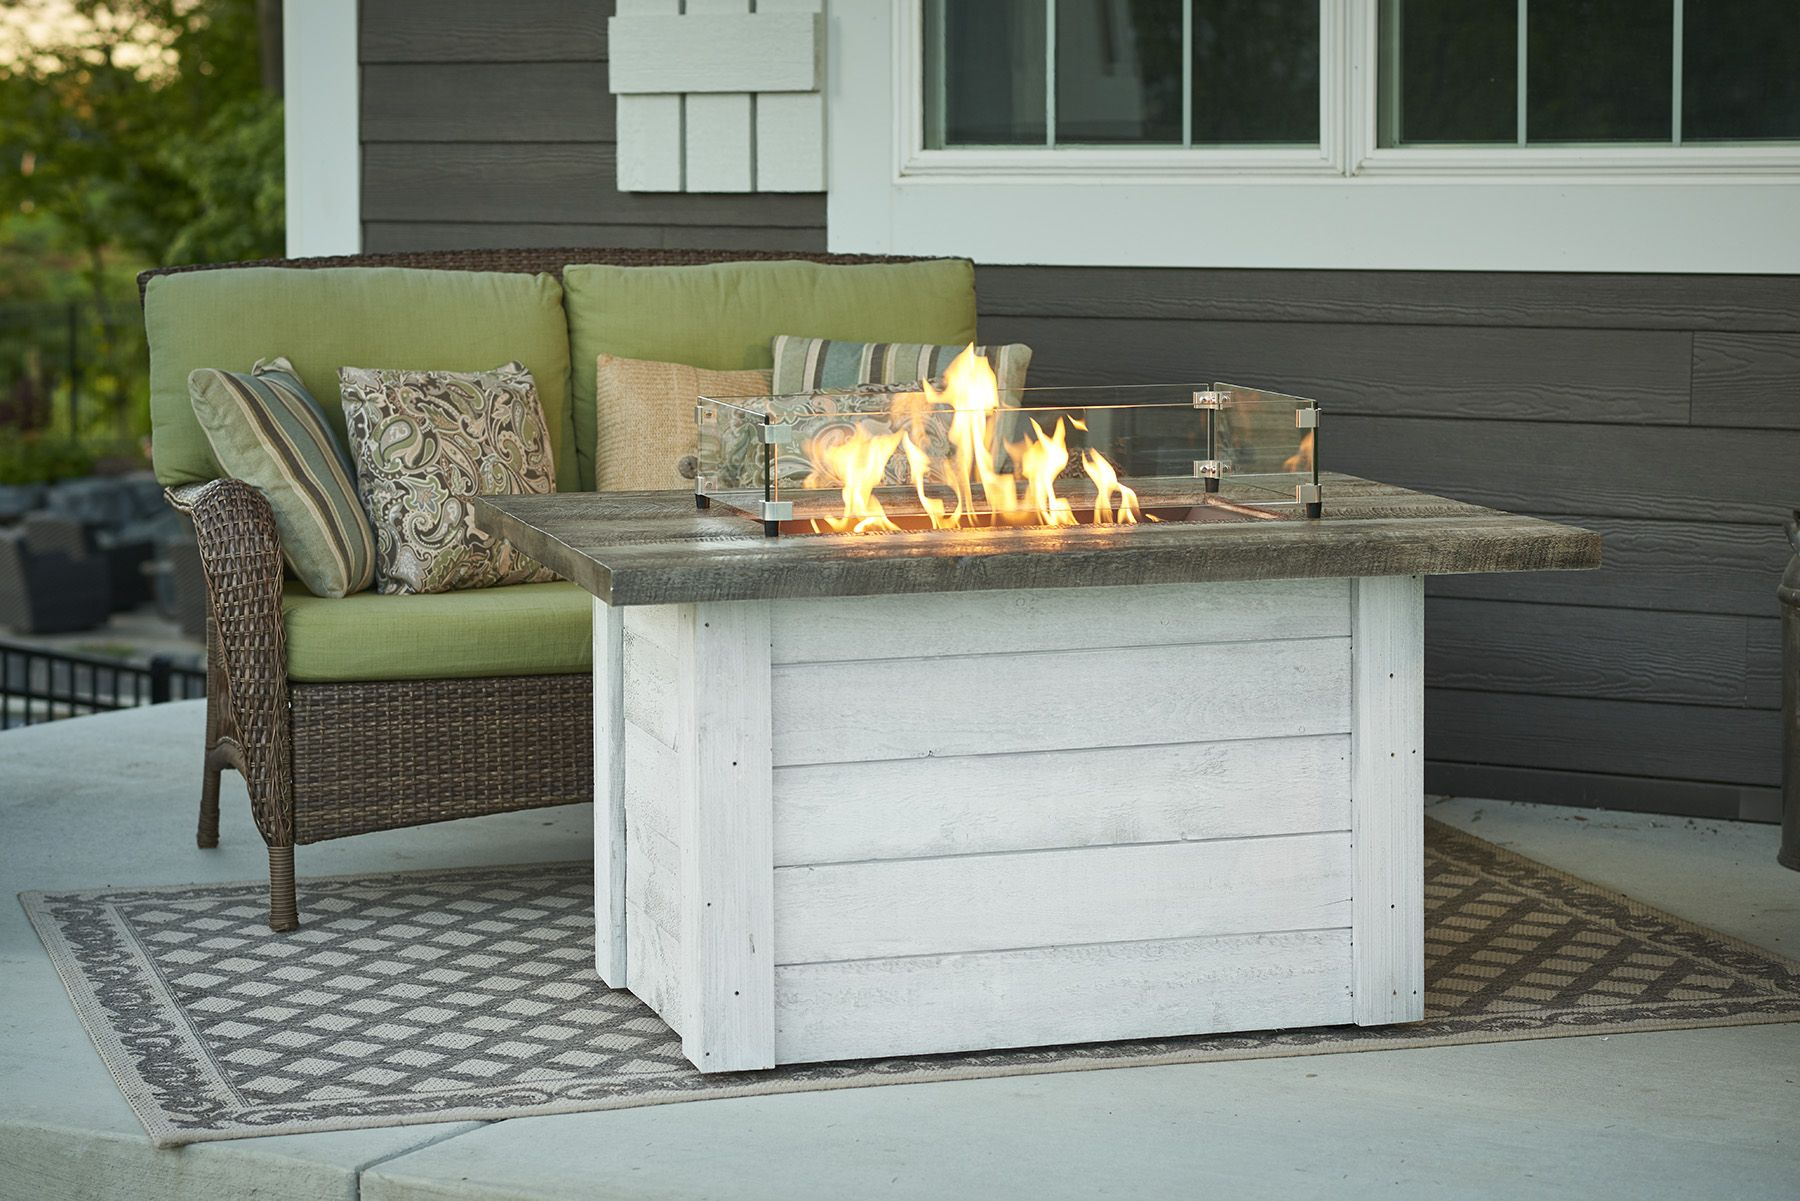 Alcott Fire Pit Table Features A White Was Cedar Base Fire Pit Table Rectangular Gas Fire Pit Gas Fire Pit Table Modern outdoor fire pit table